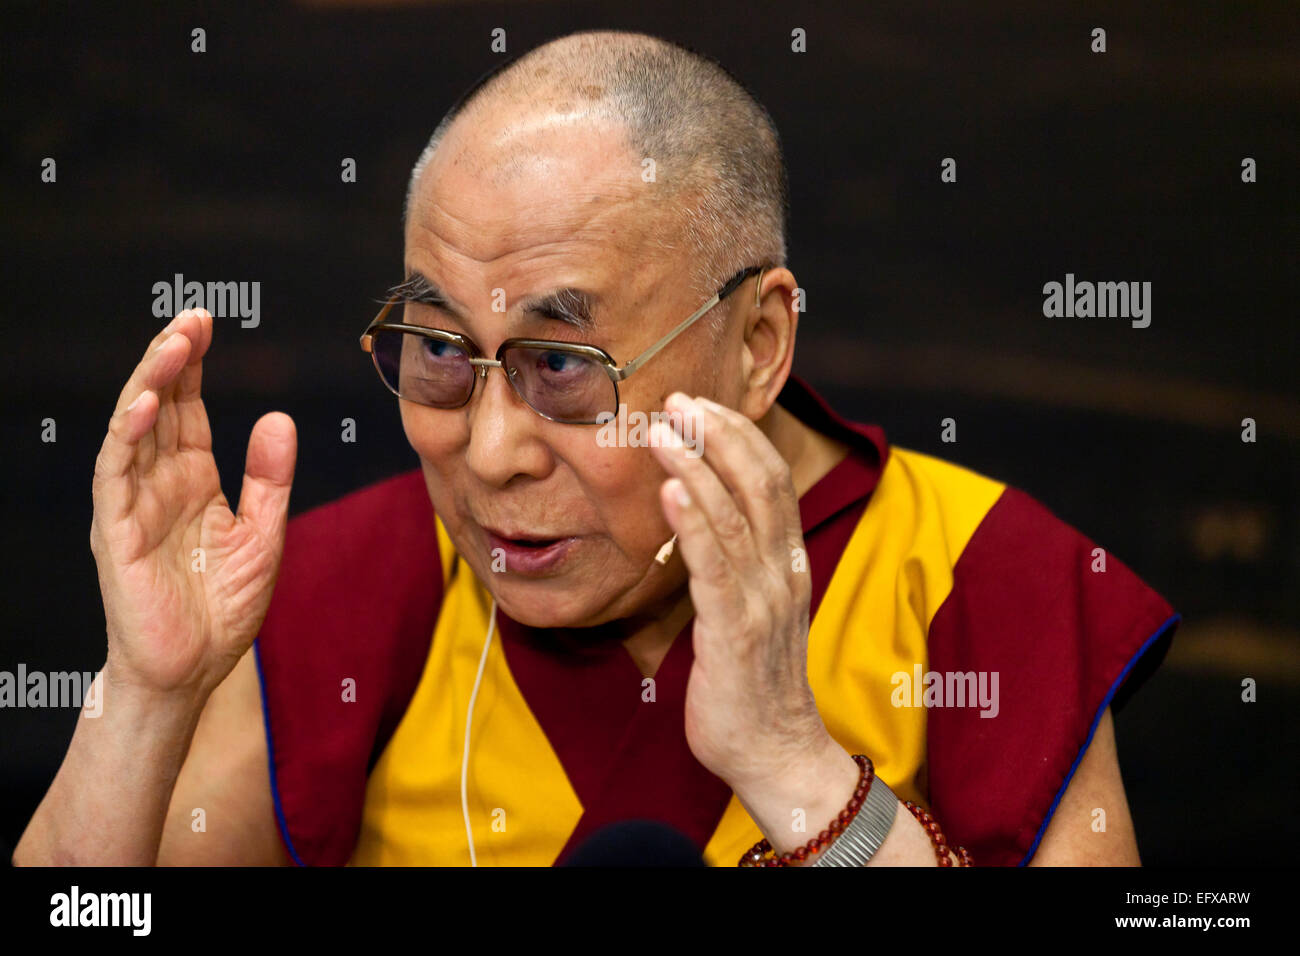 Copenhagen, Denmark. 11th February, 2015. Dalai Lama begins his 2 days visit to Denmark with a press conference. - Stock Image